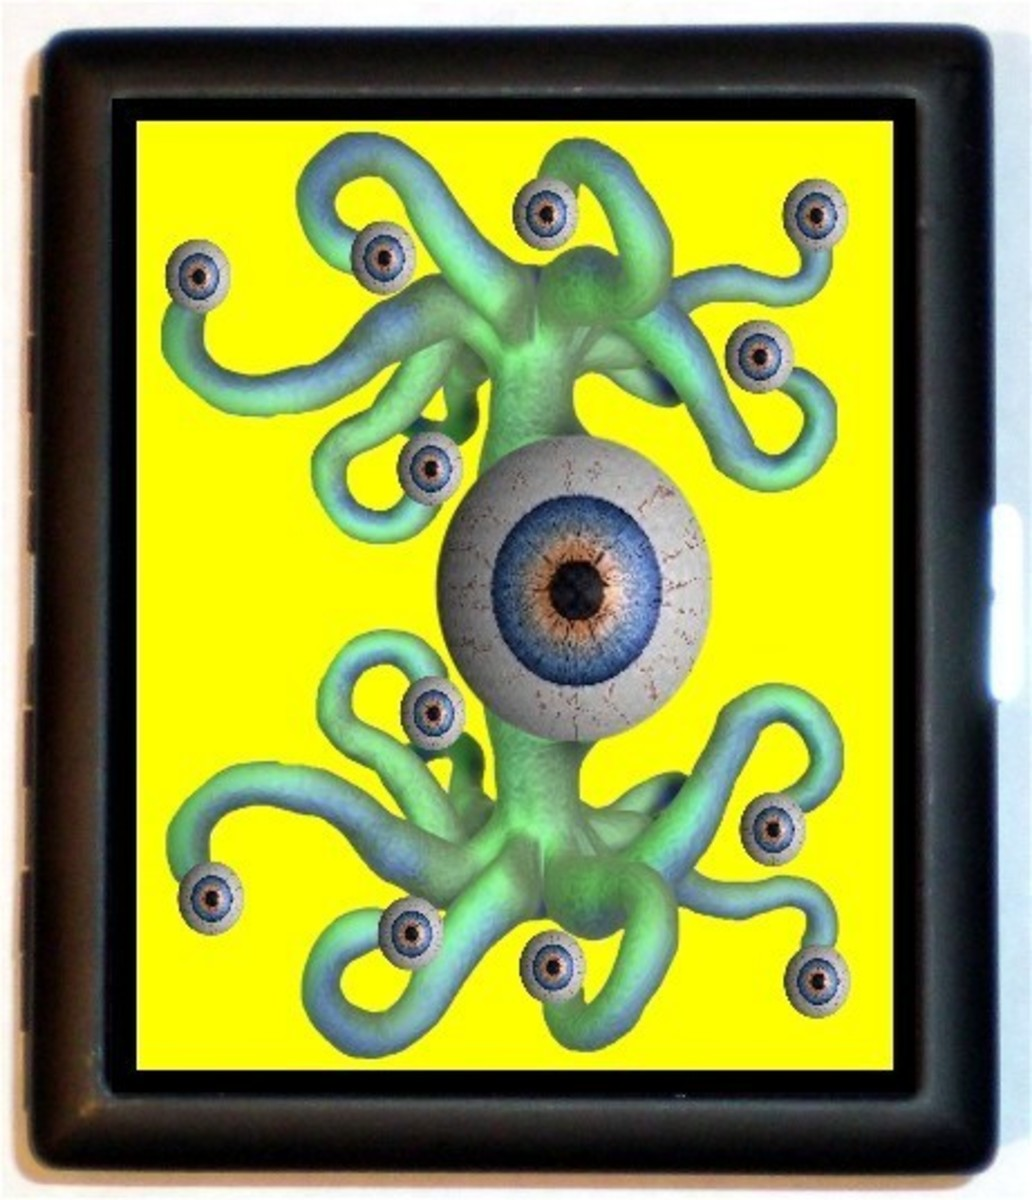 Why the octopus? Why the eyes? It just doesn't make sense.